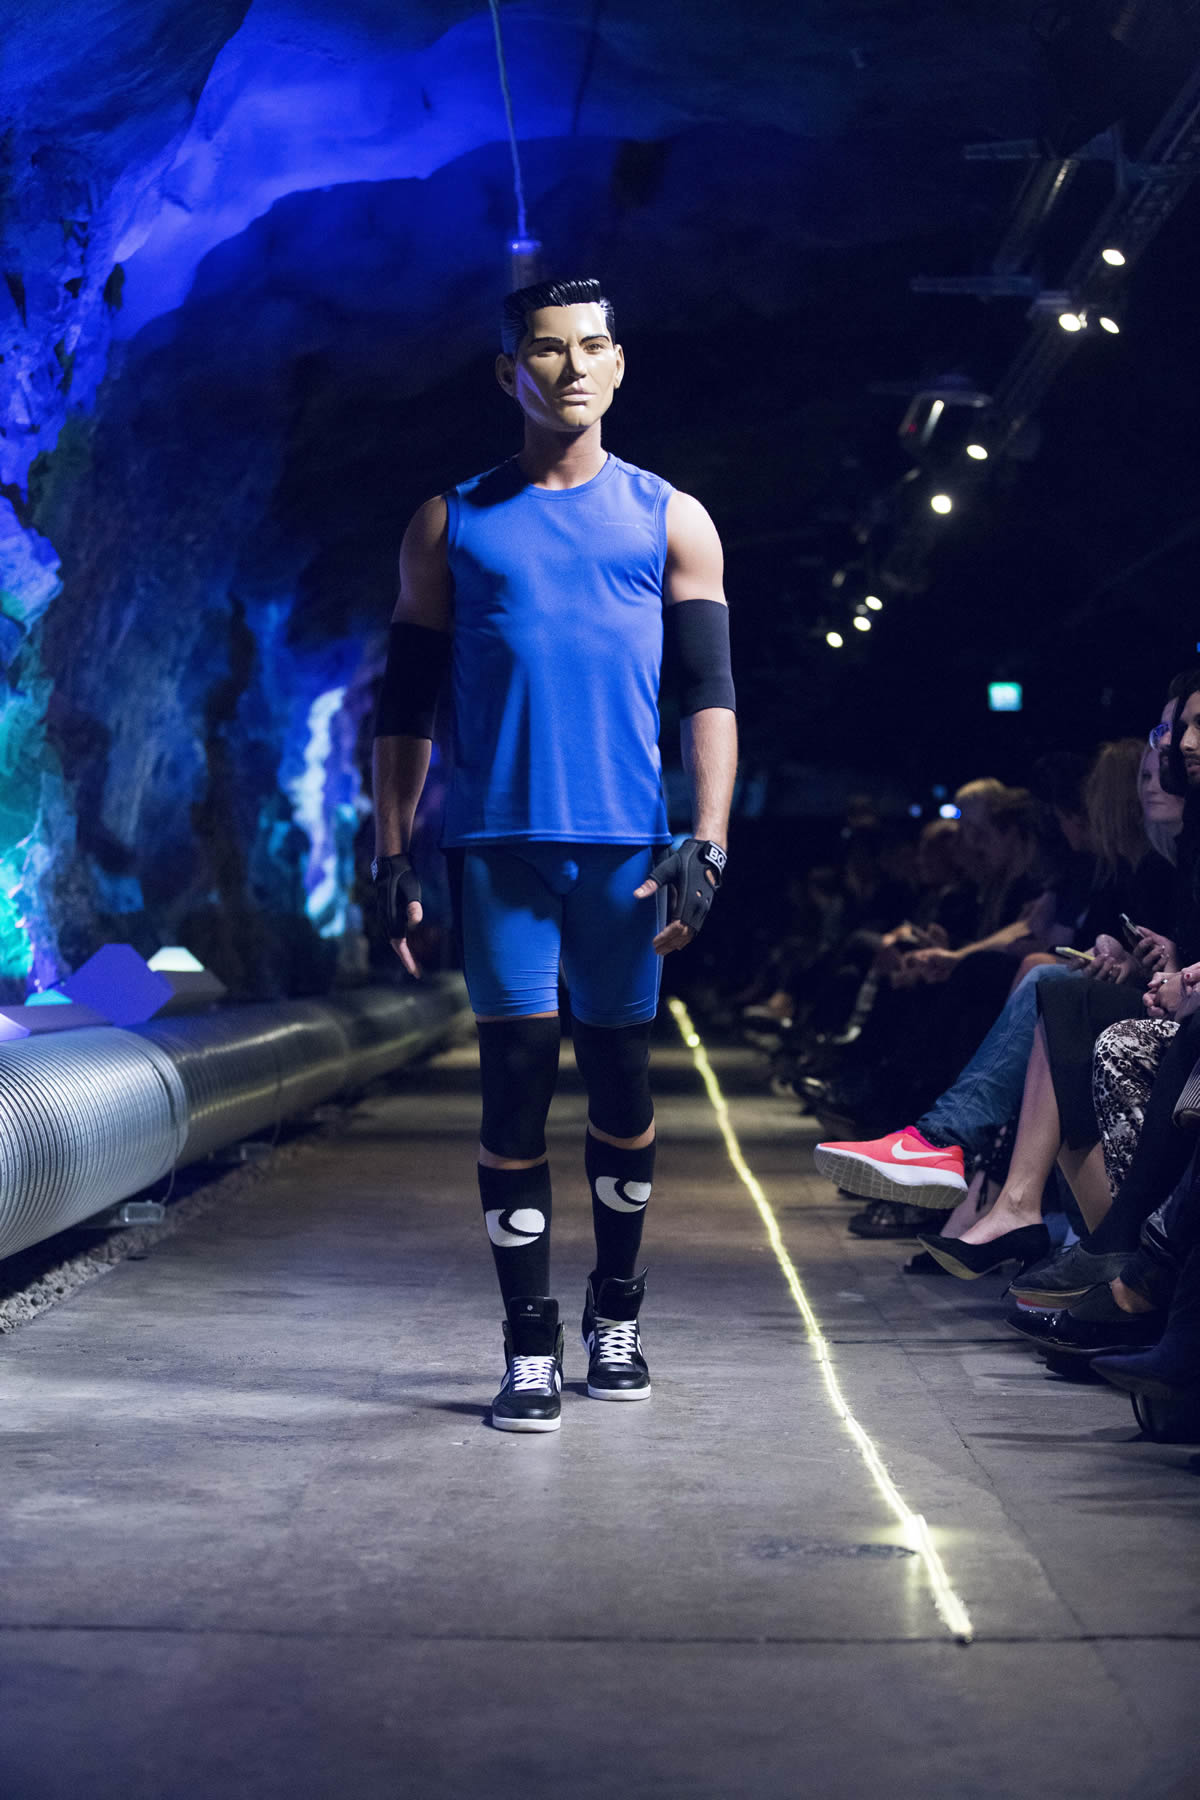 First person lover avatars on runway in björn borg show @fashion week stockholm